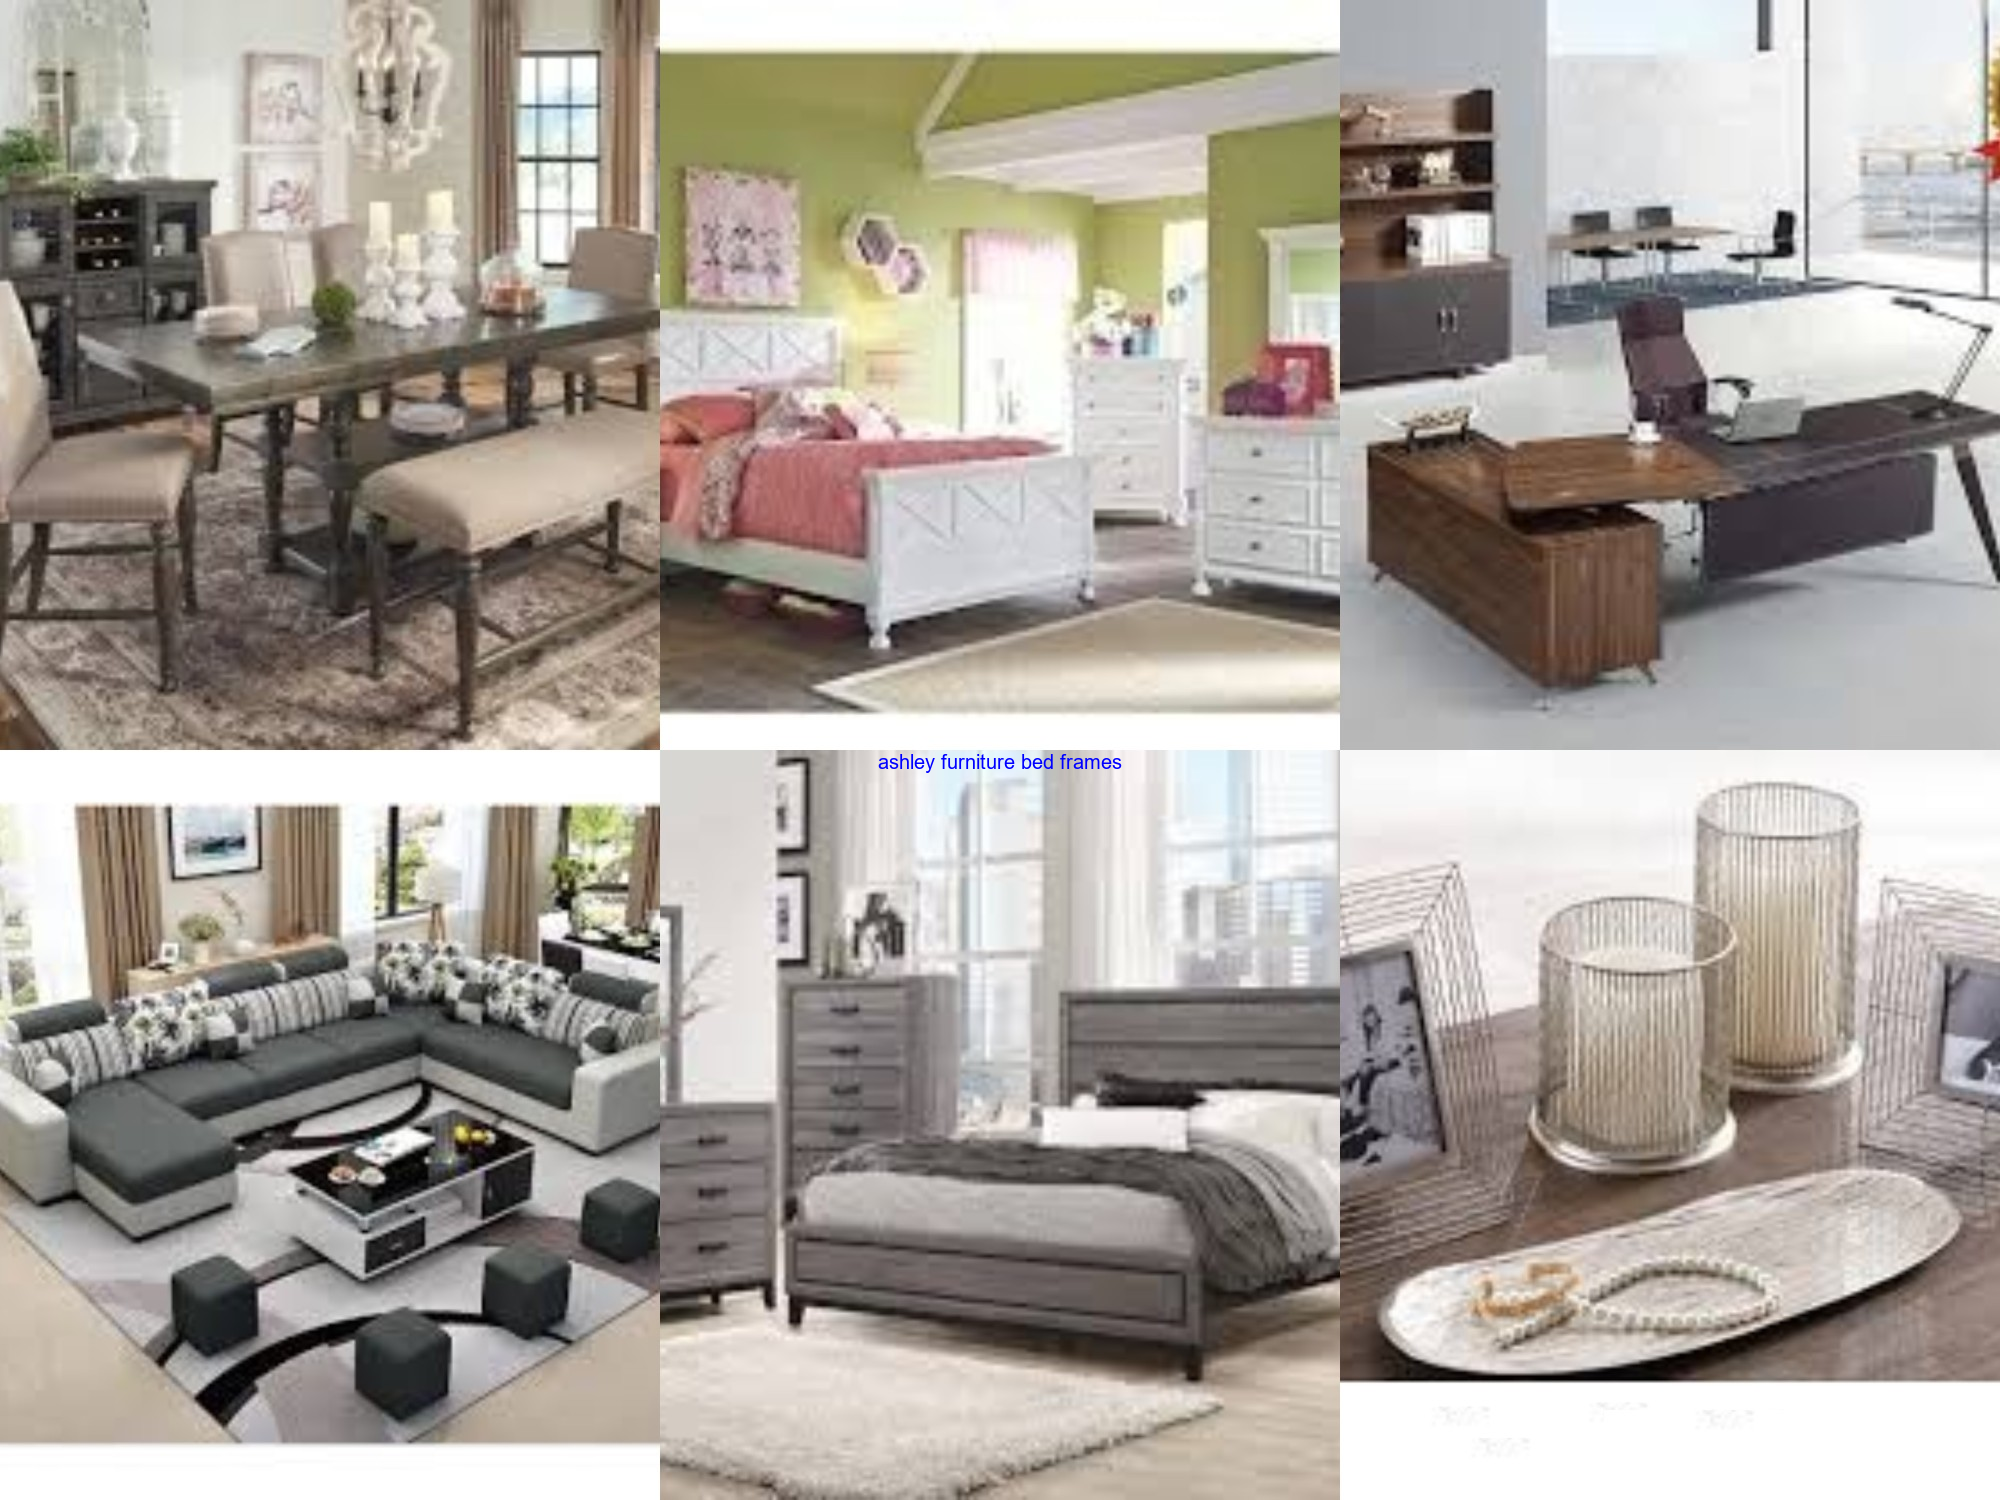 ashley furniture bed frames in 2020 Furniture prices